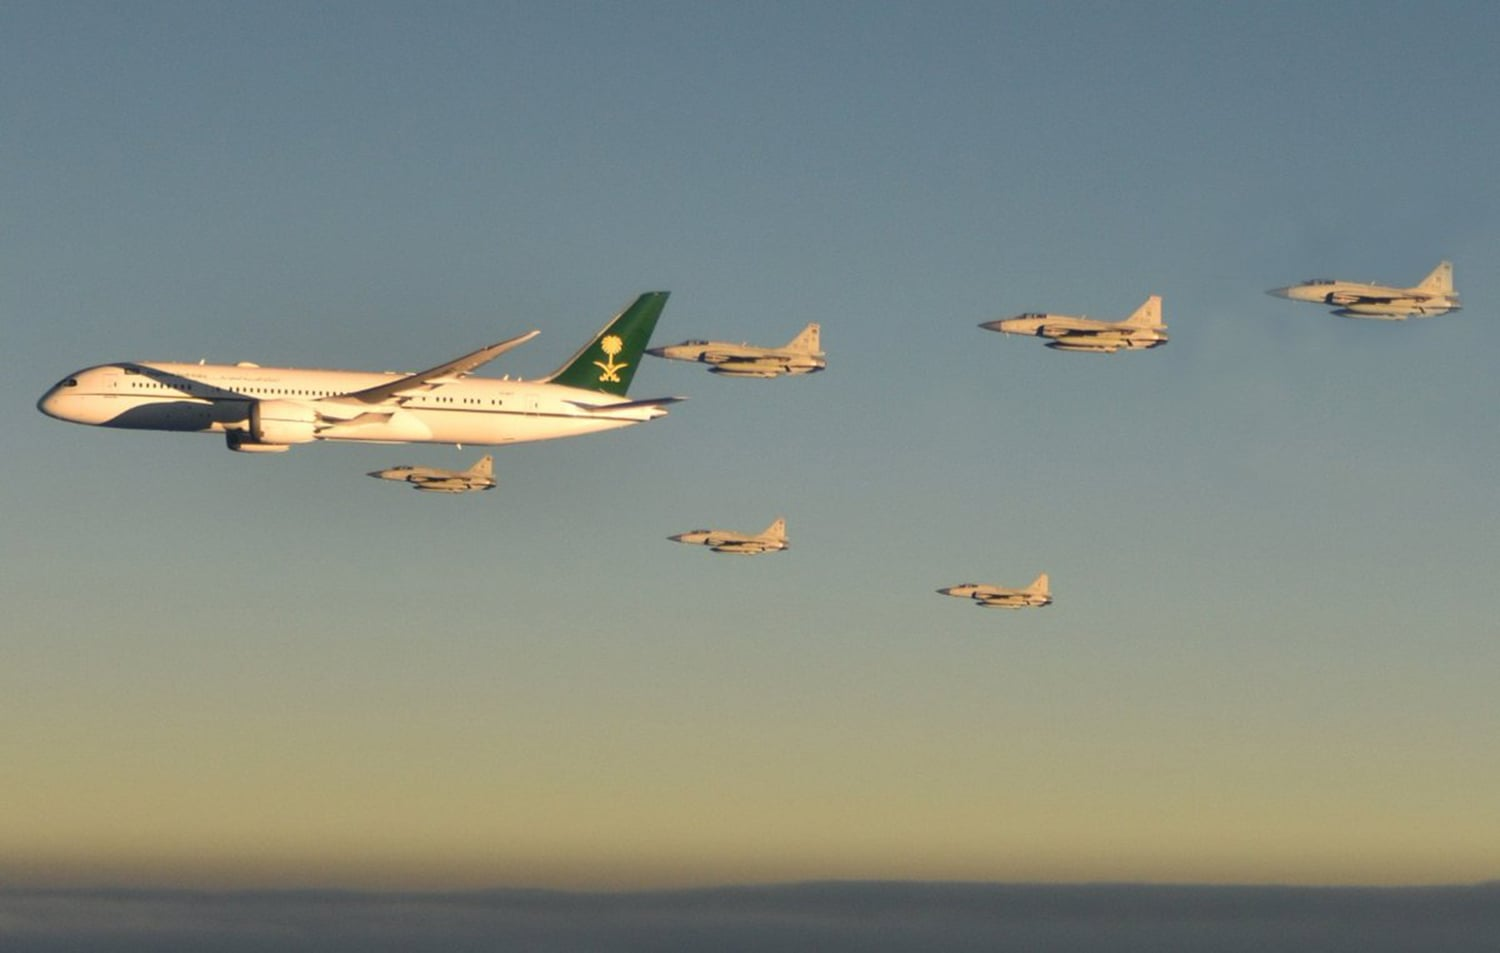 Pakistan Air Force aircraft escorting the crown prince's aircraft on Sunday. — Photo courtesy Govt of Pakistan Twitter